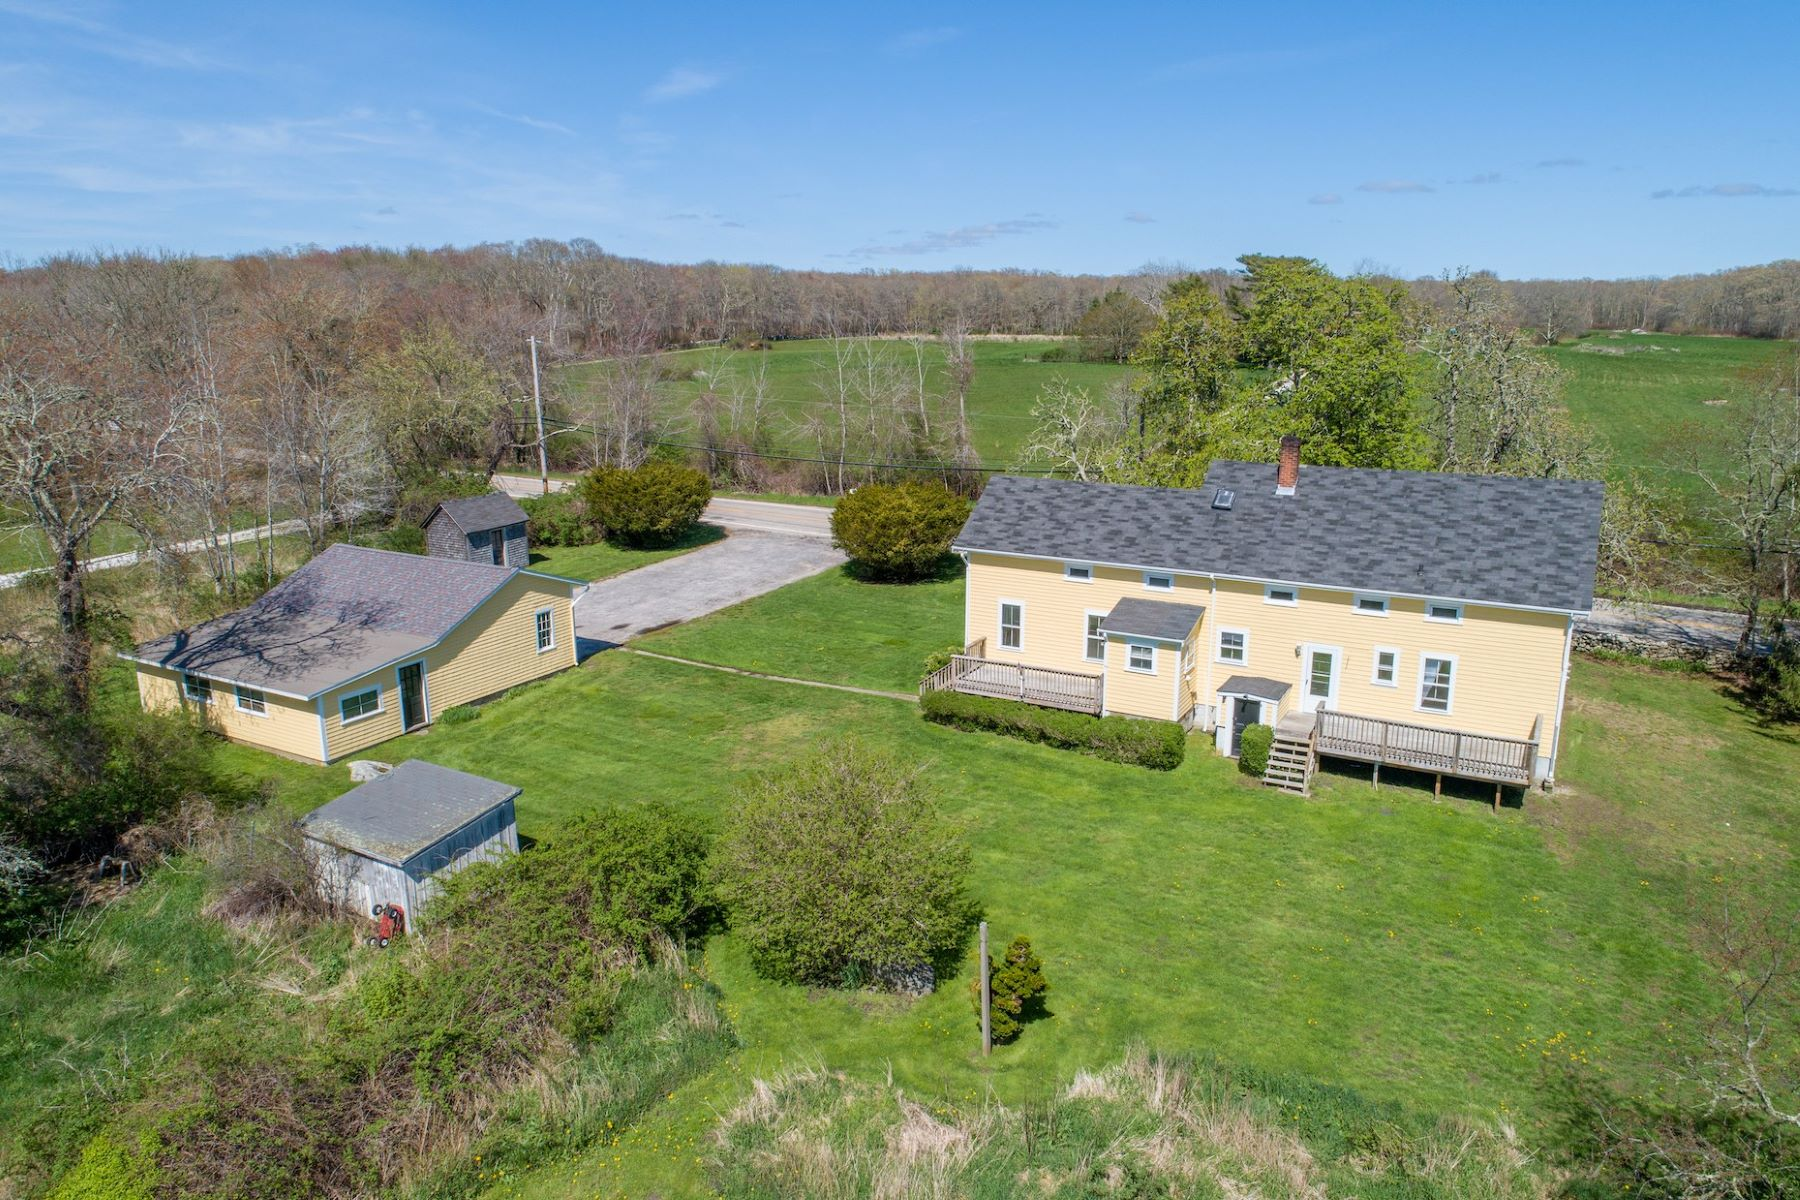 Single Family Homes for Sale at 55 East Main Road, Little Compton, RI Little Compton, Rhode Island 02837 United States